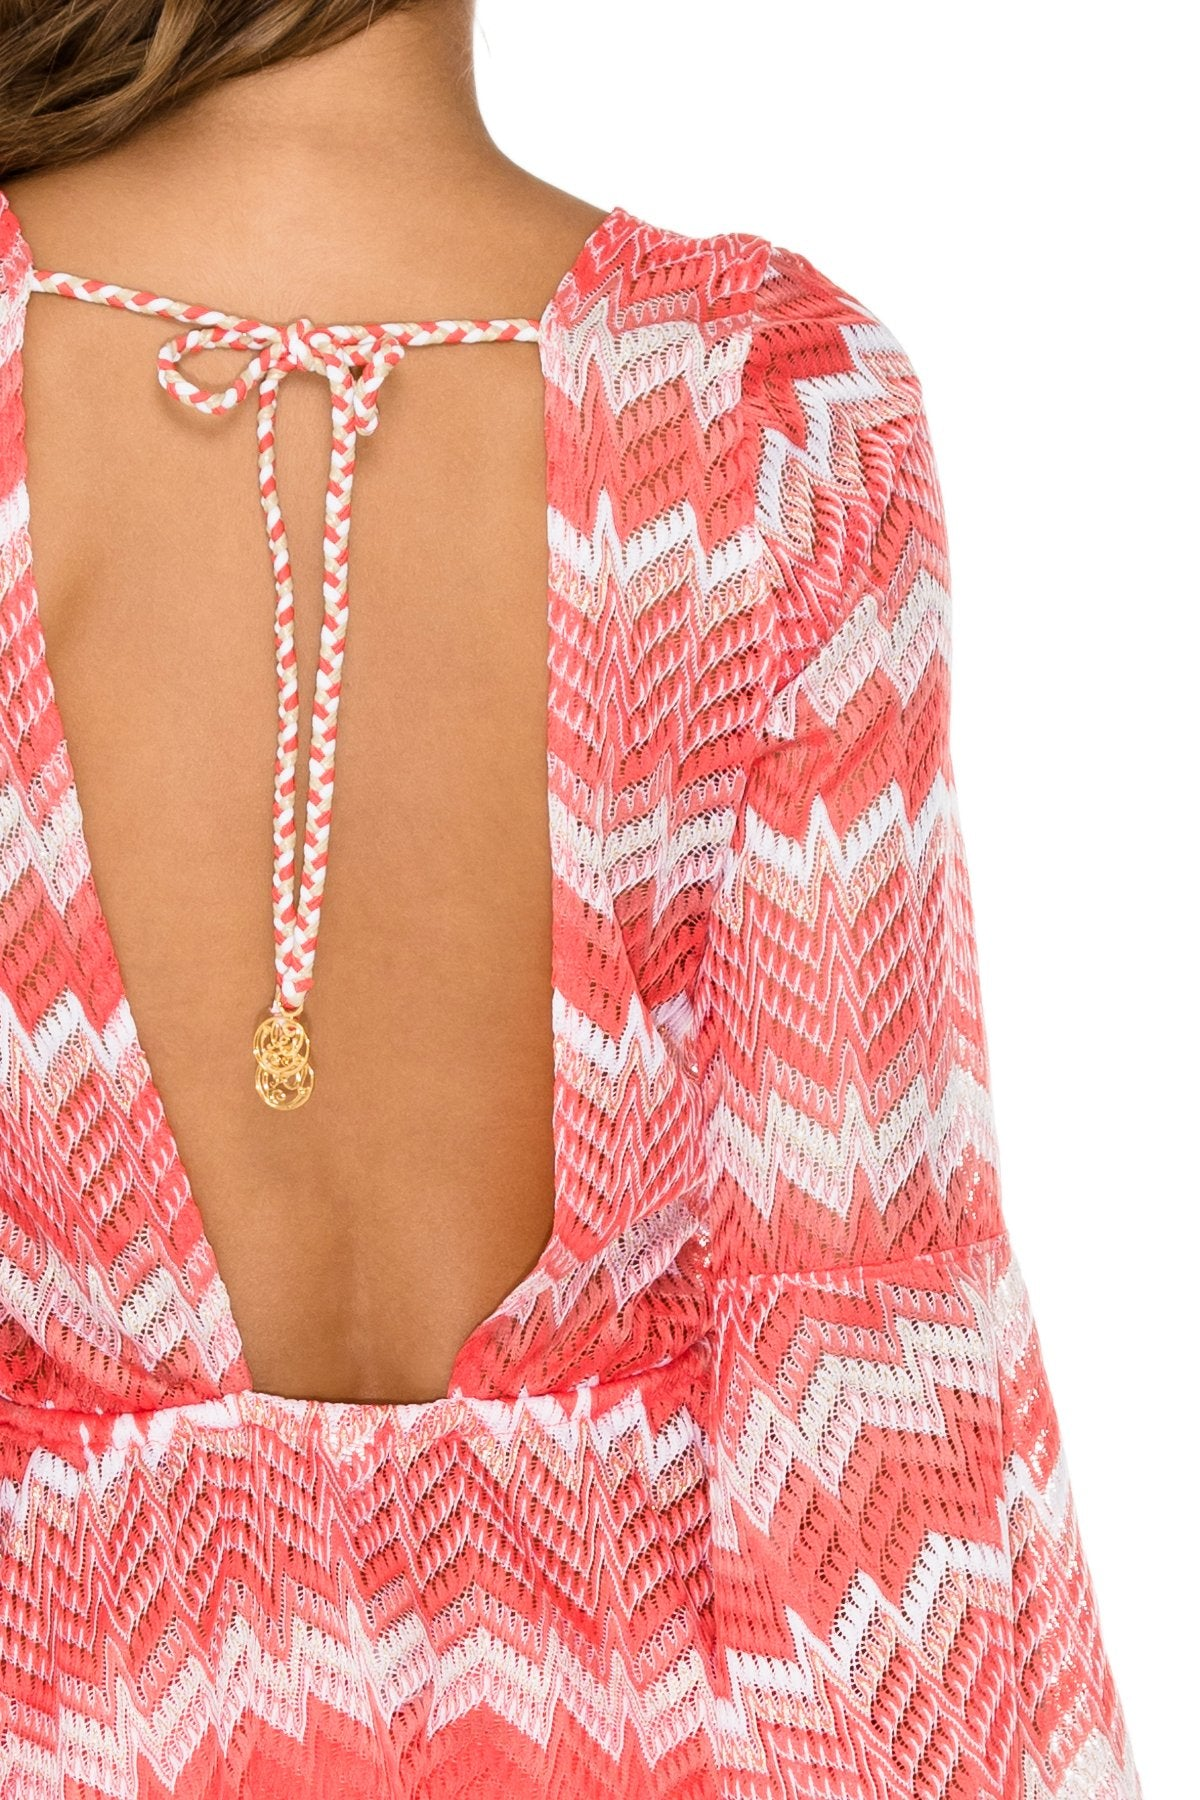 AMOR Y MIEL - Bell Sleeve Dress • Coral